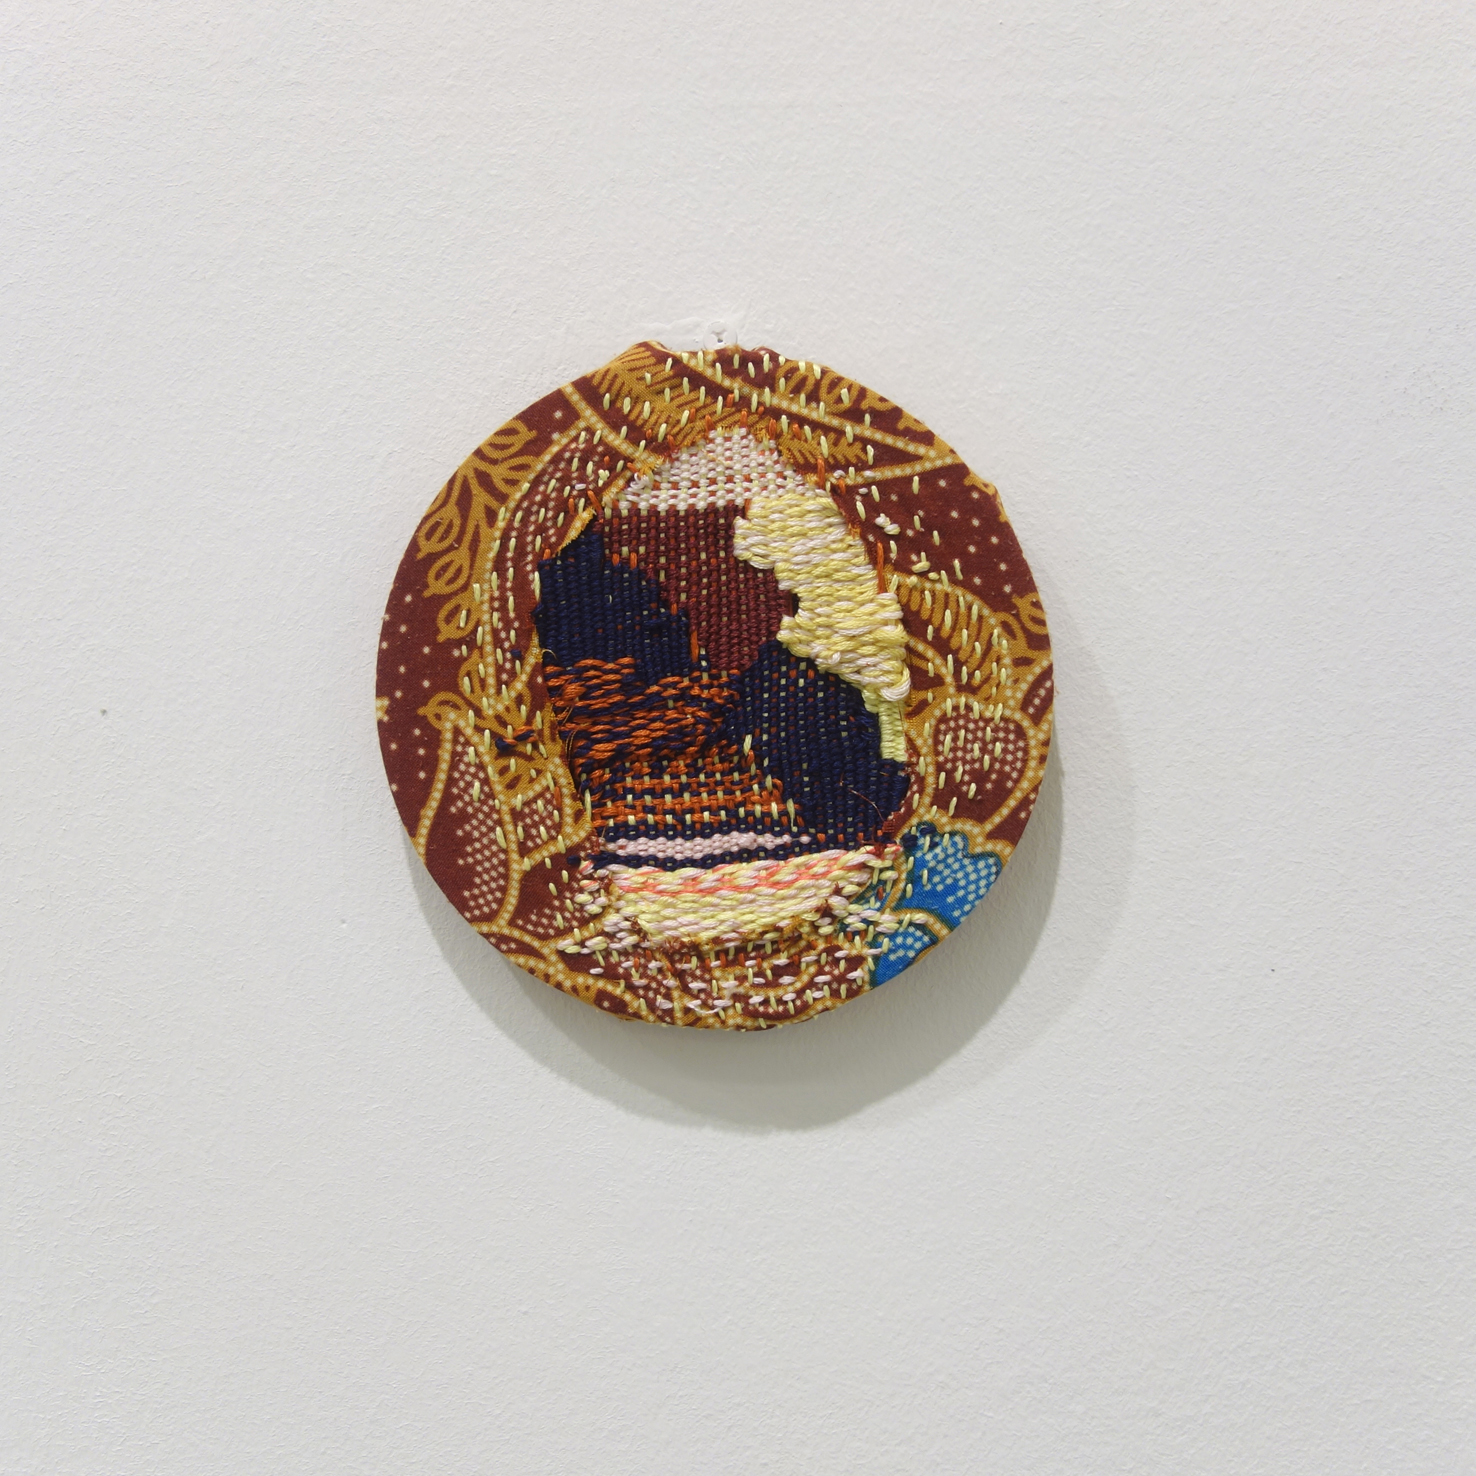 Izziyana Suhaimi, Cross Section of Bone V, 2015, Woven cotton thread darned on found Batik; wooden hoop, Ø13 cm.jpg